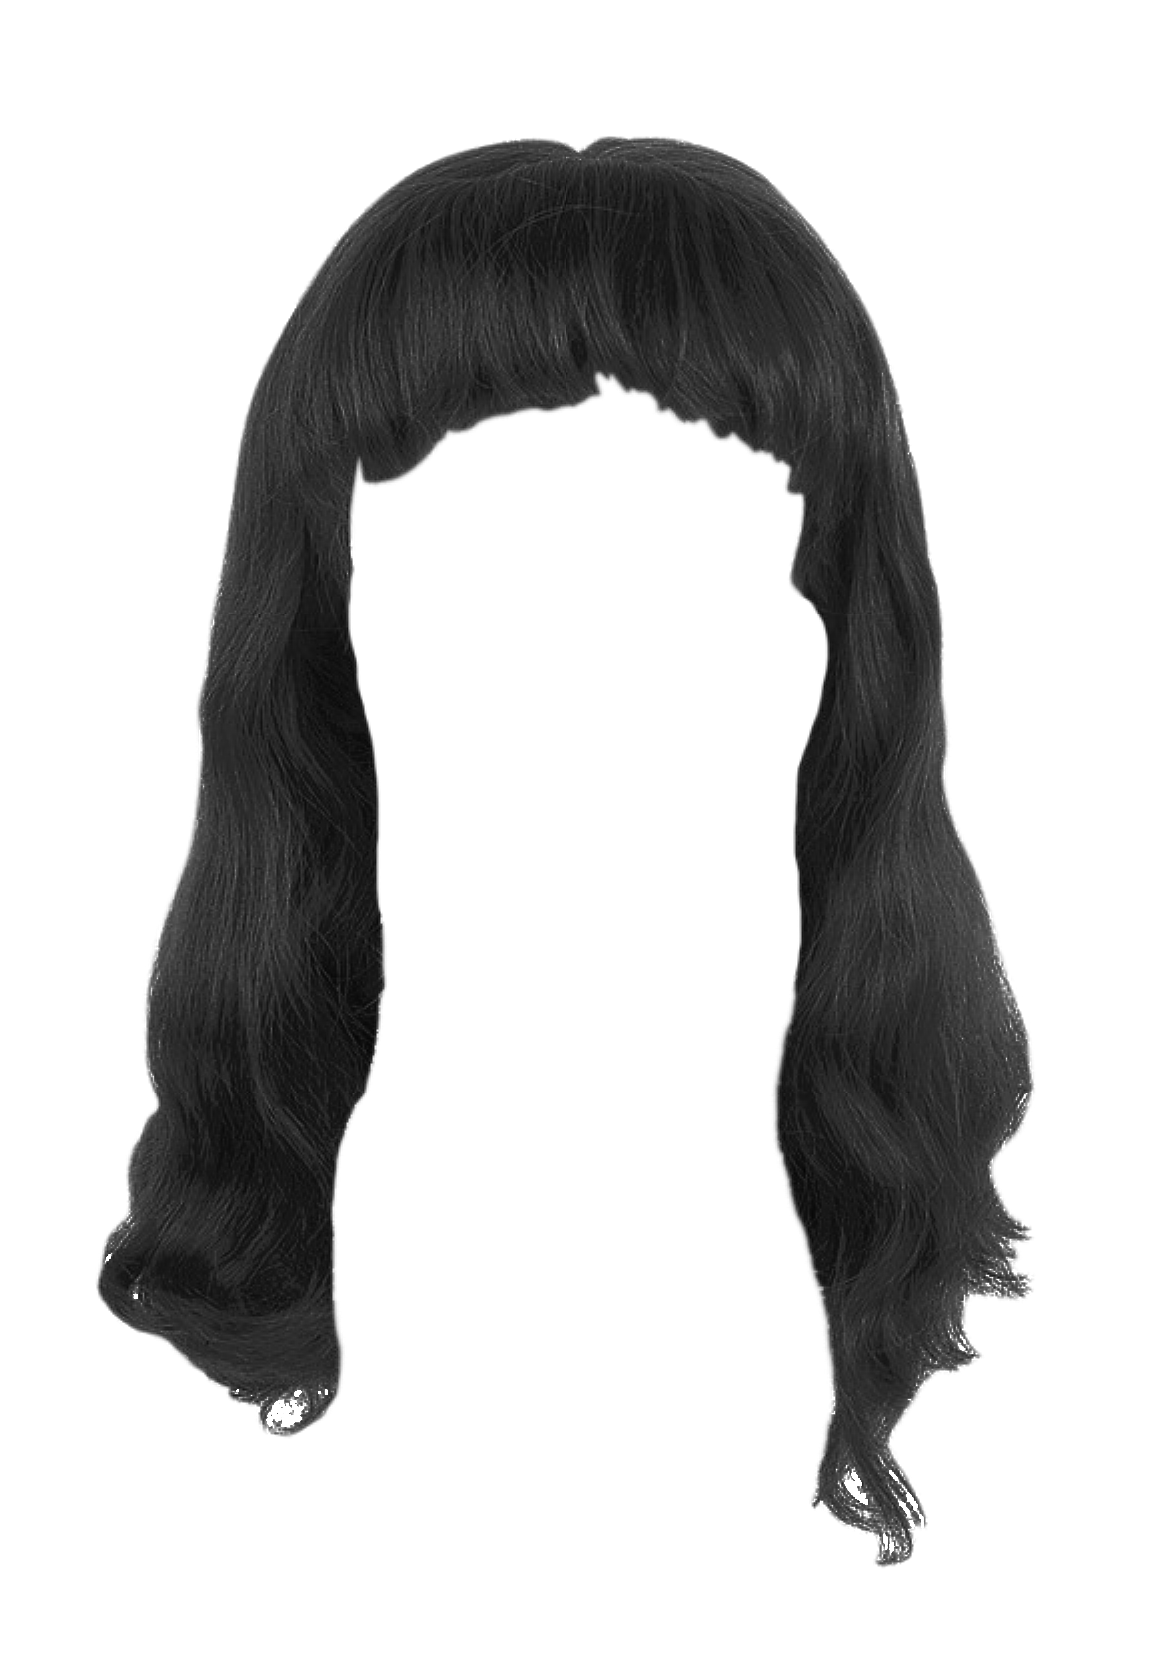 hair png transparent hair images pluspng #12756